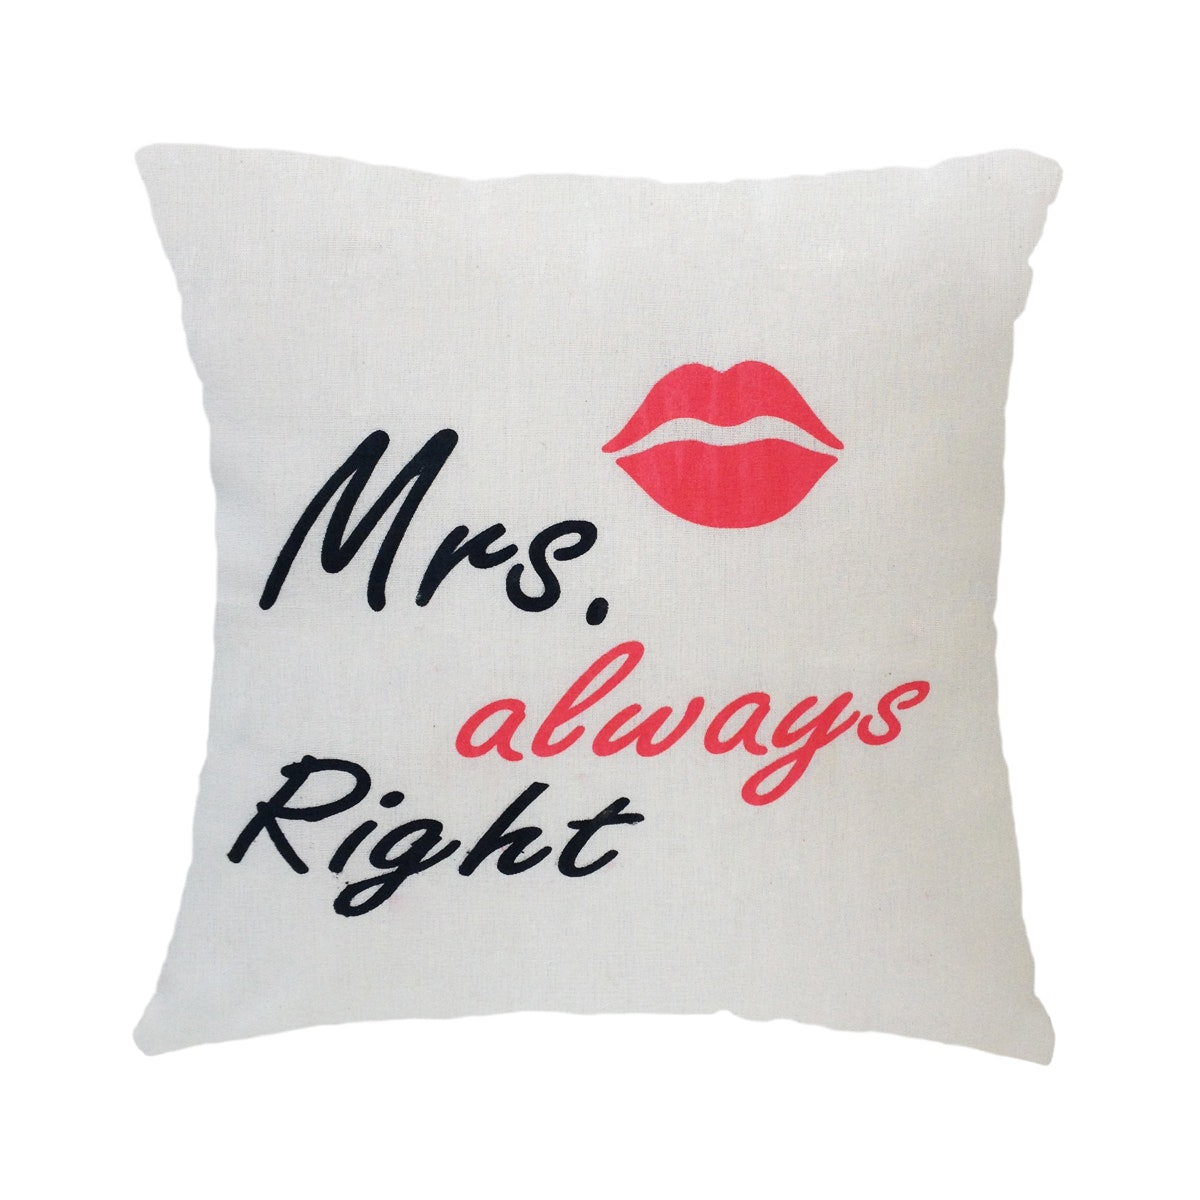 Stiletto In Style Cushion Cover Mrs. Always Right (White) 40 X 40Cm